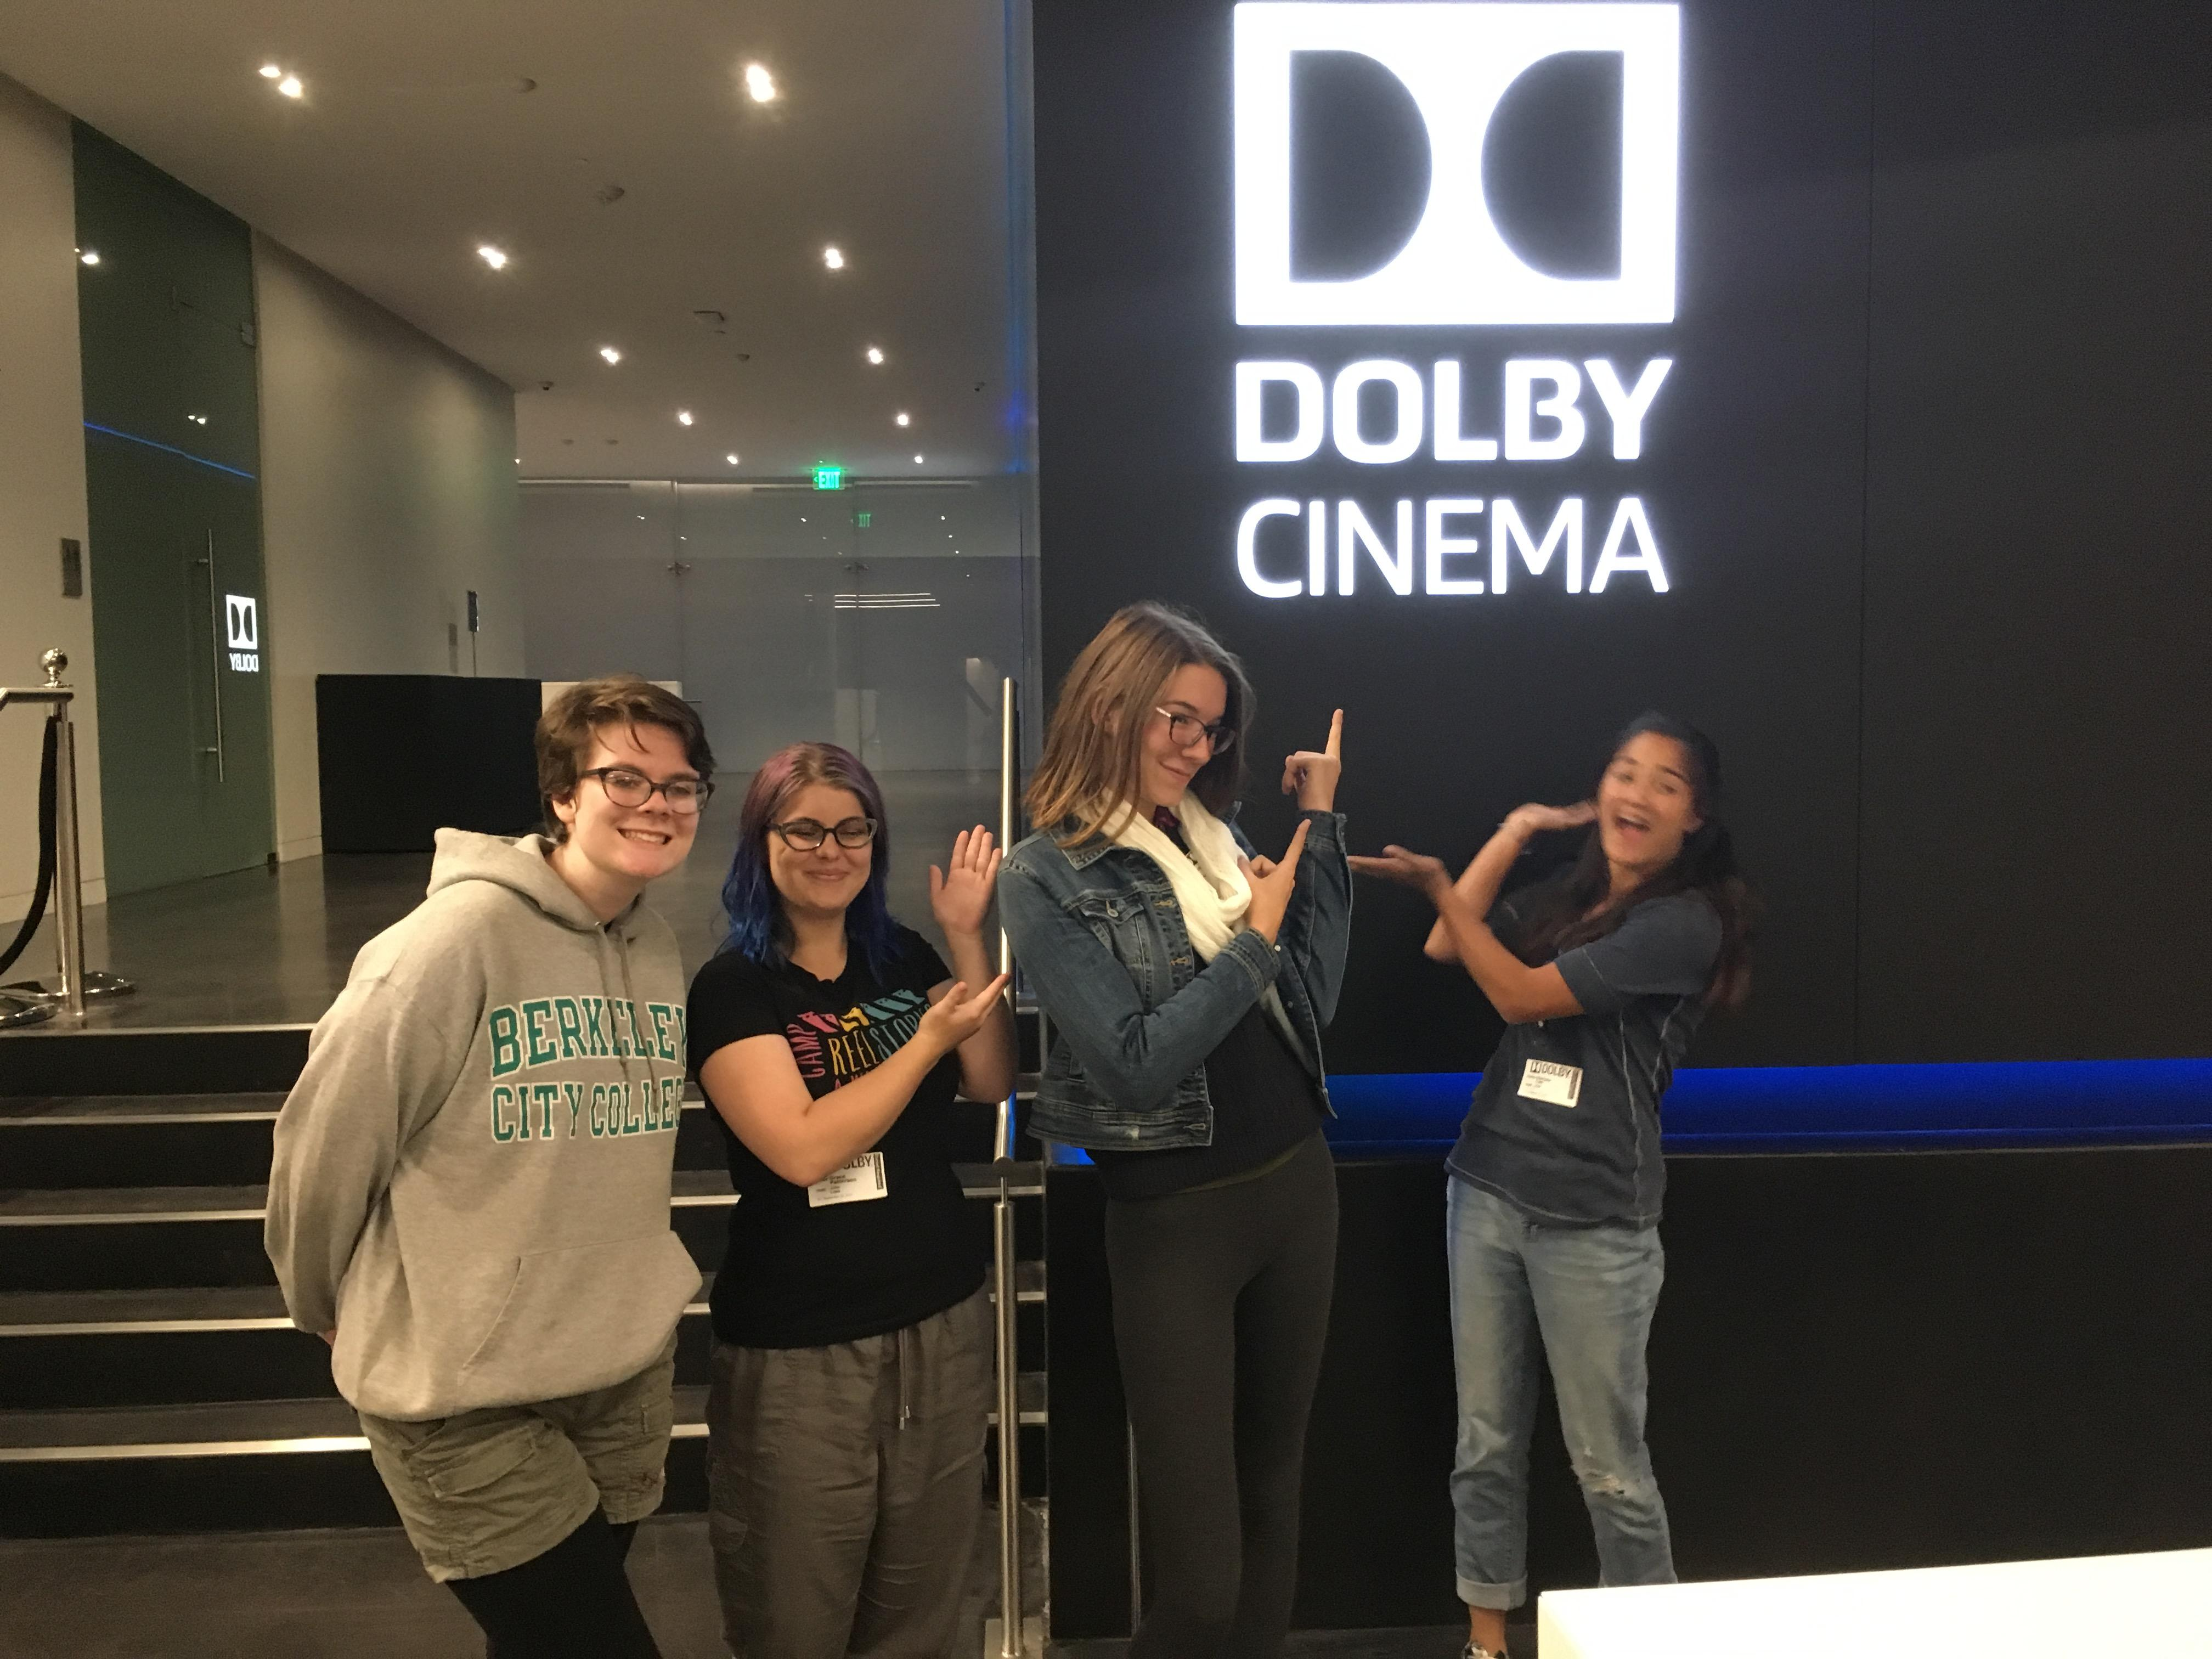 Working with Dolby